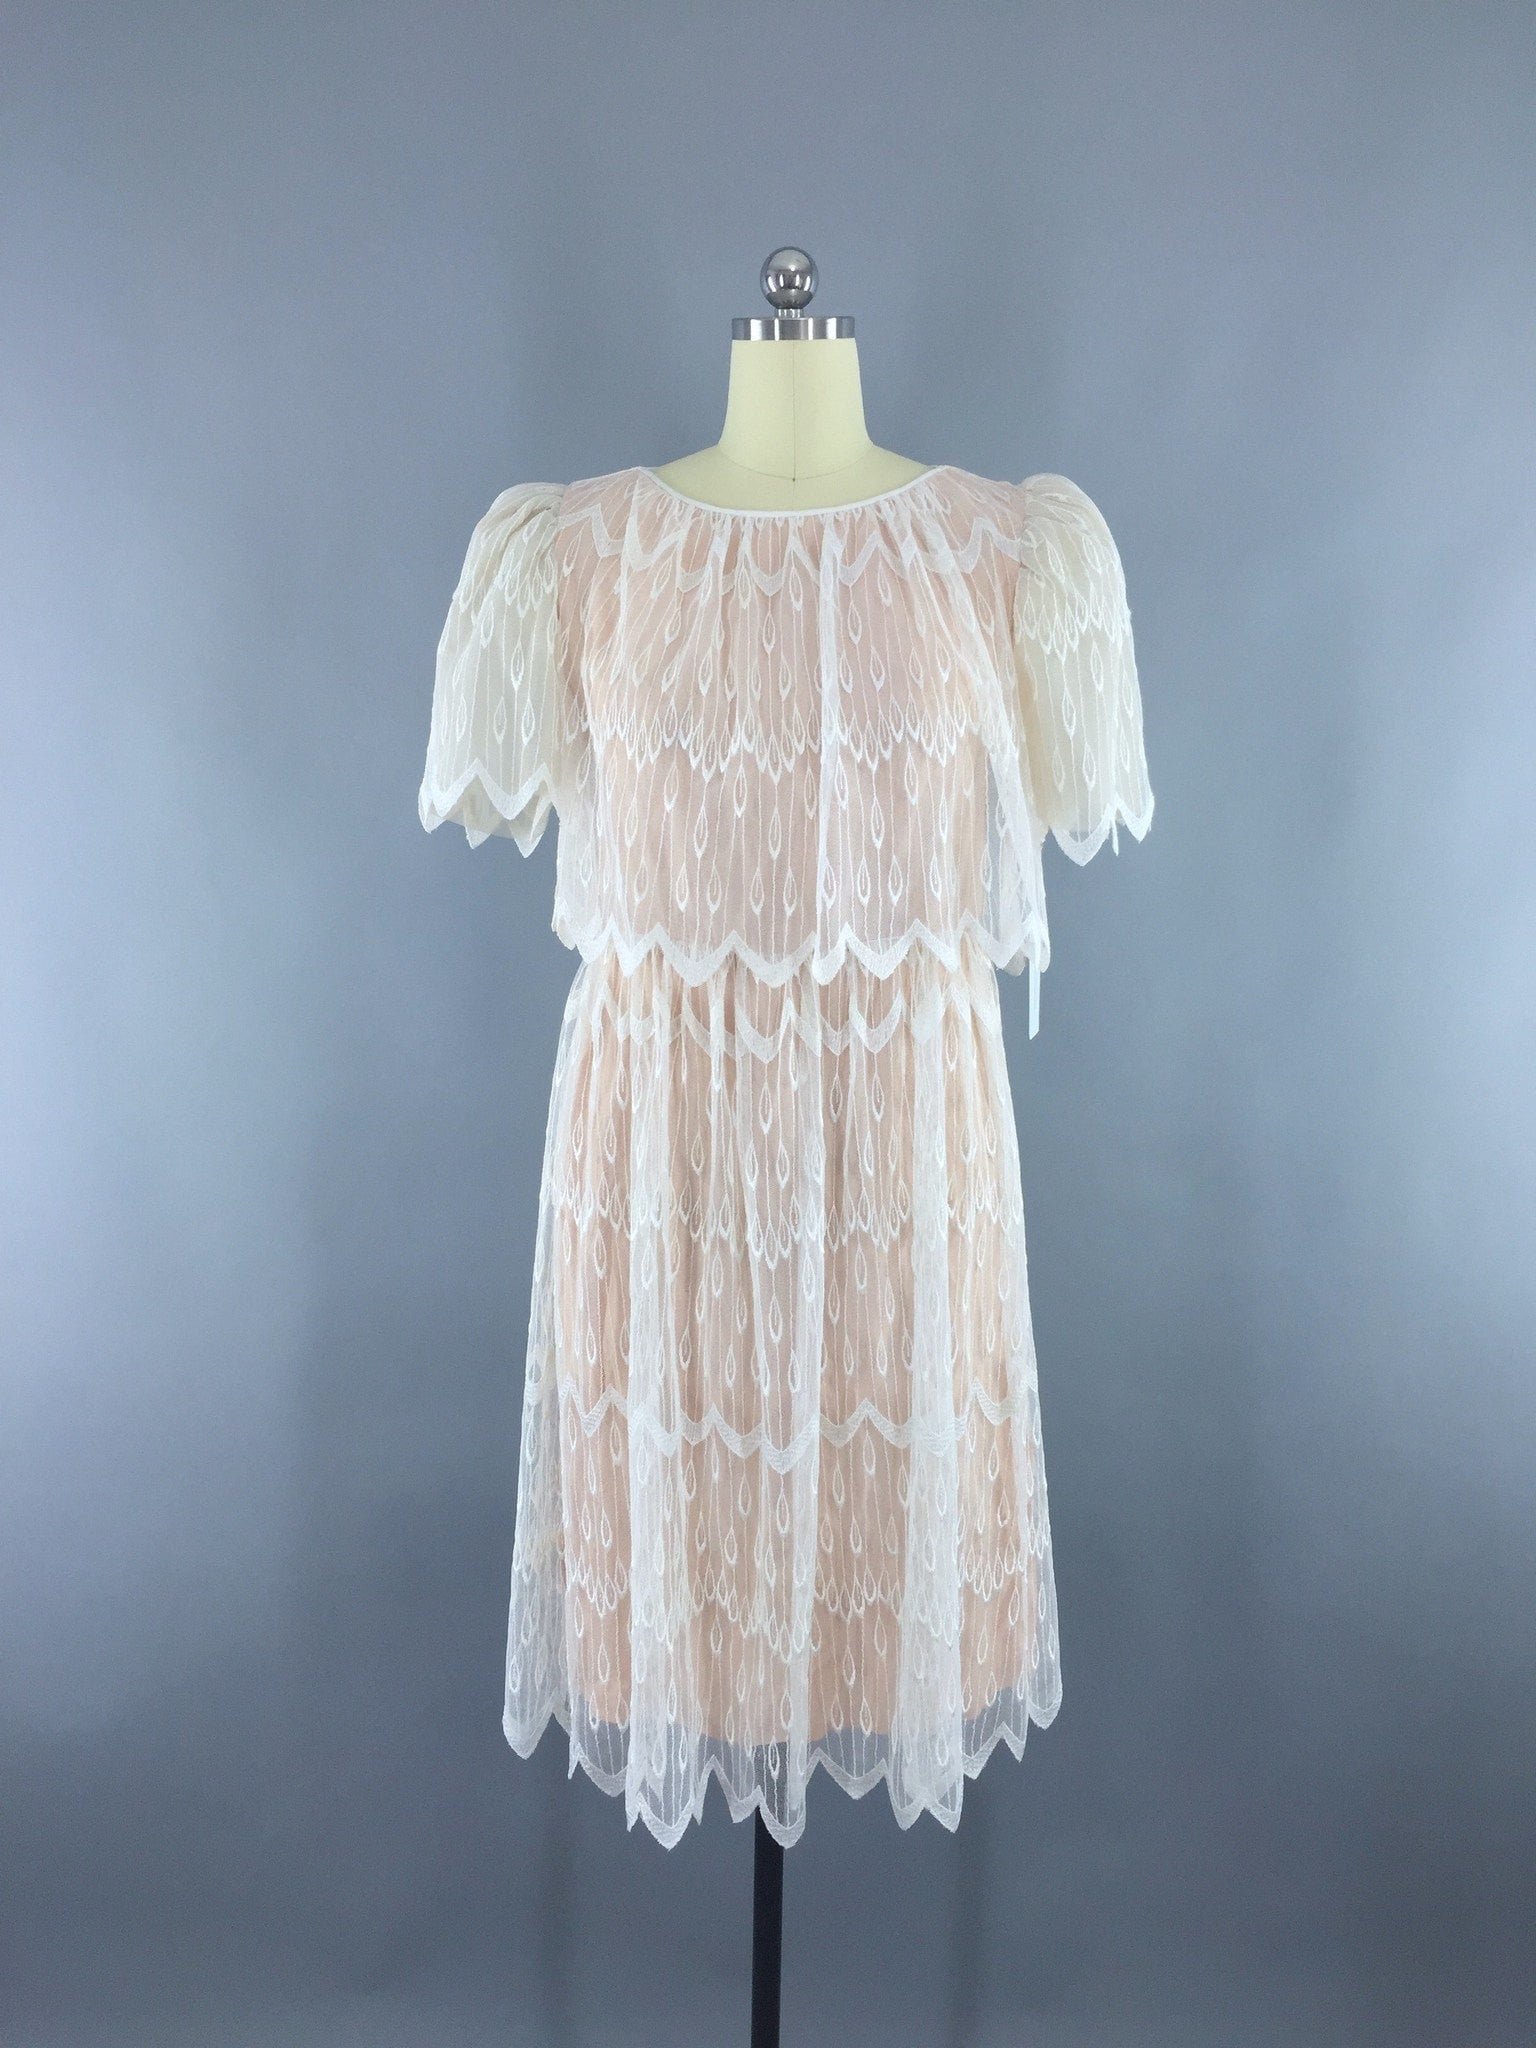 1980s Vintage Lace Cocktail Party Dress Dress ThisBlueBird